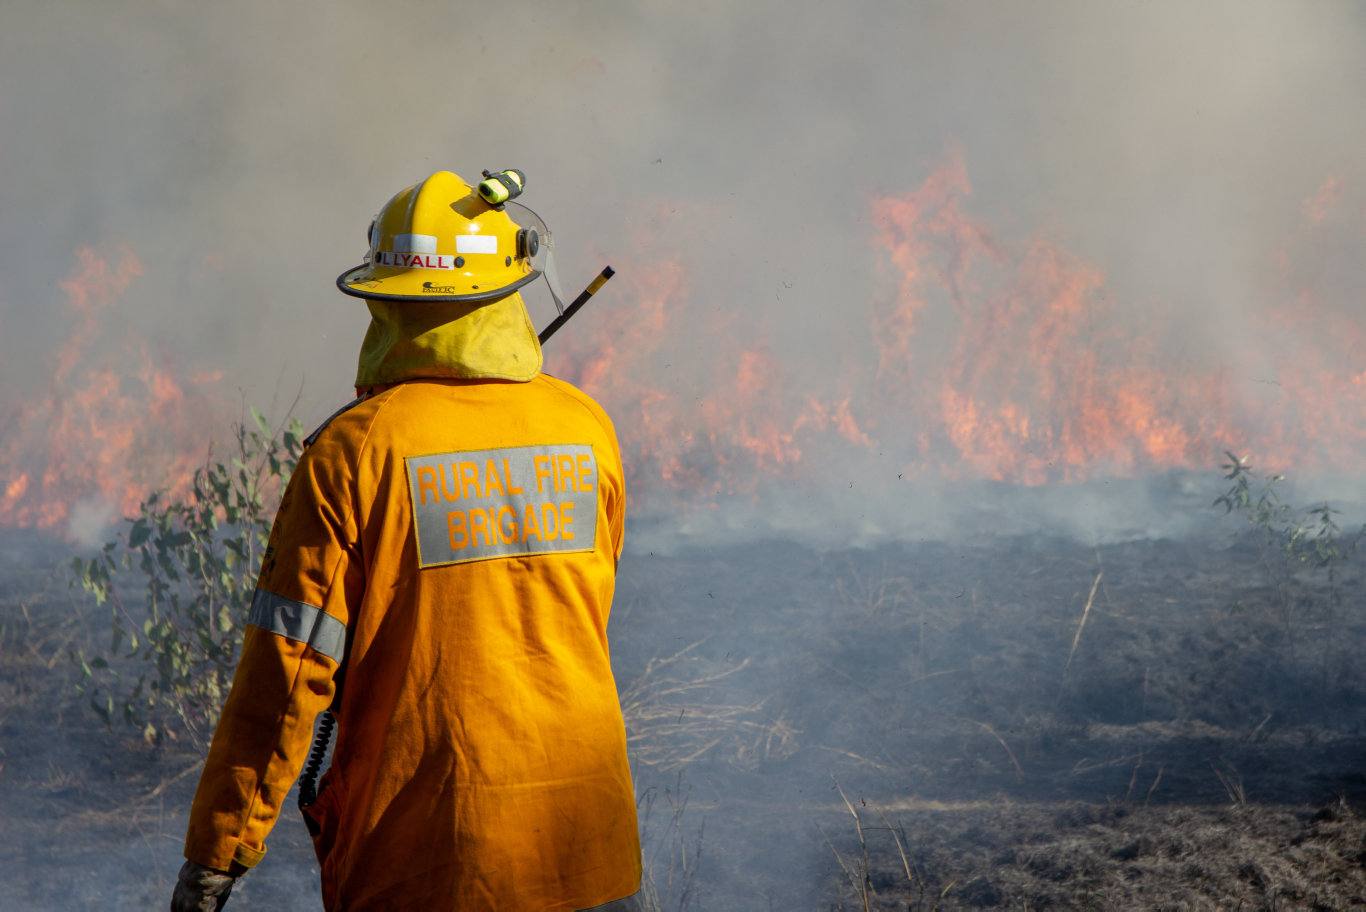 Queensland Rural Fire Service drews from the Lockyer Valley and Somerset performand hazard reduction burns as part of a training exercise on Saturday, August 3, 2019